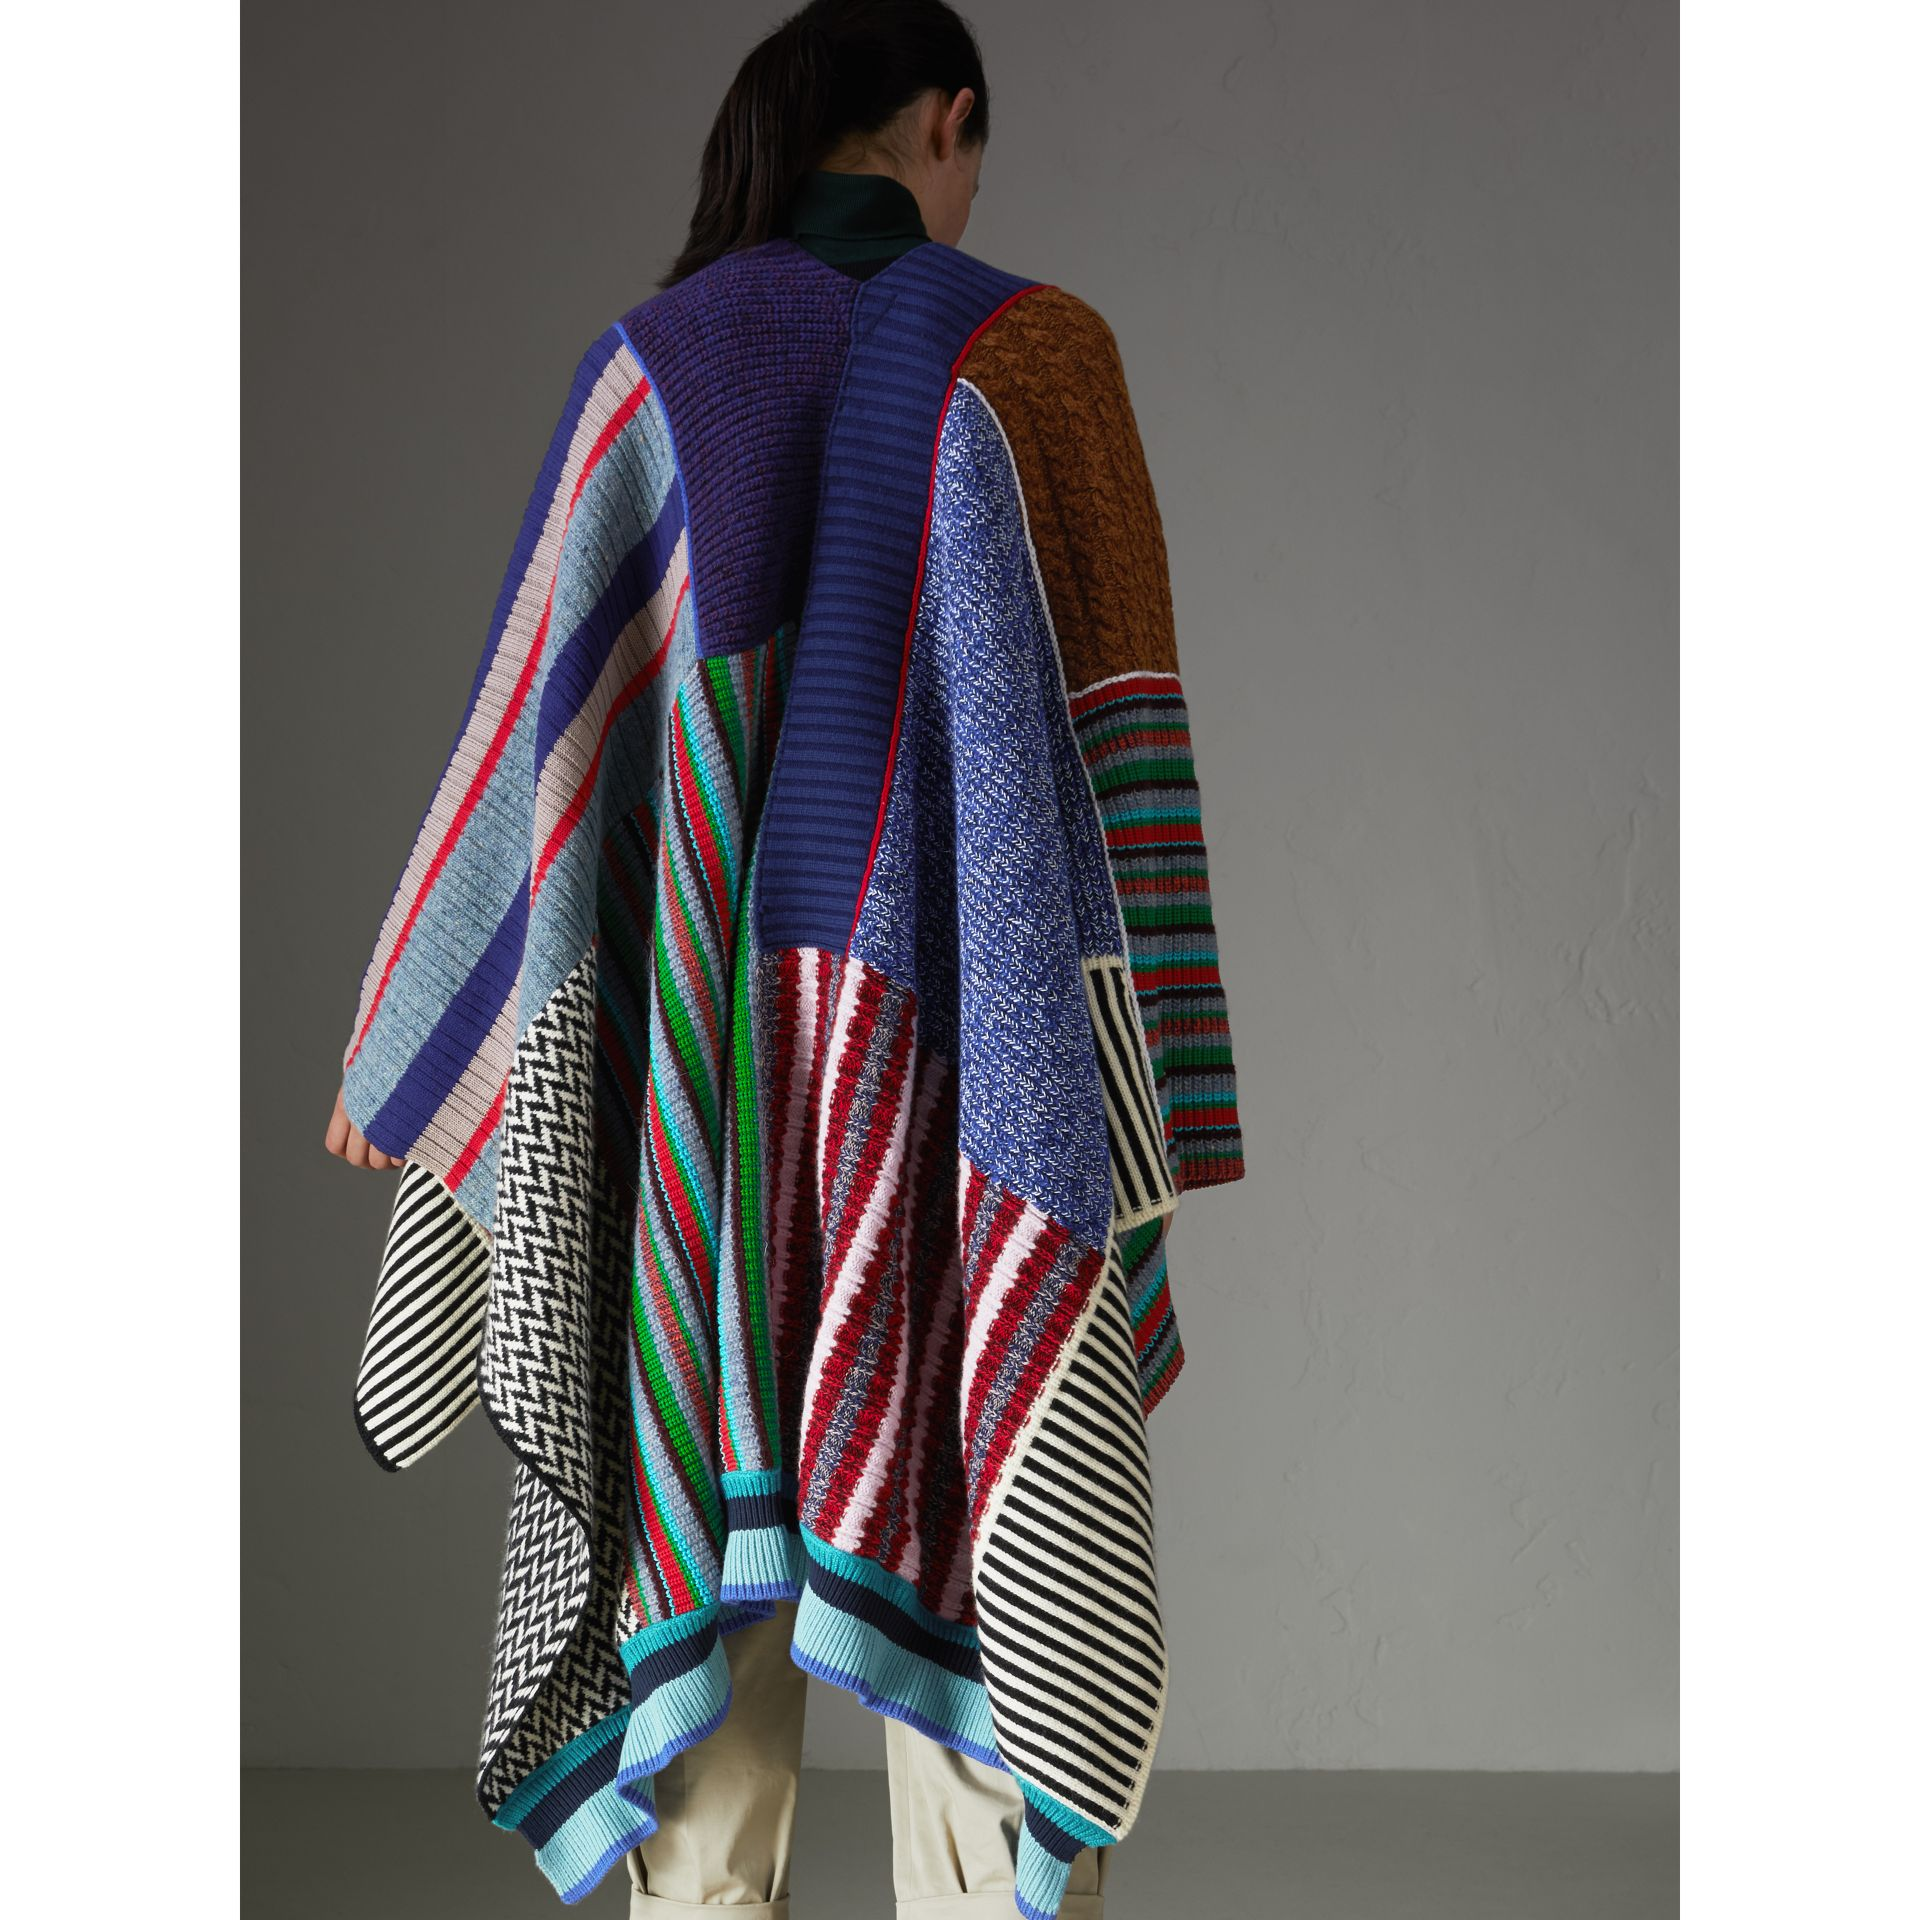 Wool Cashmere Blend Patchwork Poncho in Multicolour - Women | Burberry United Kingdom - gallery image 2